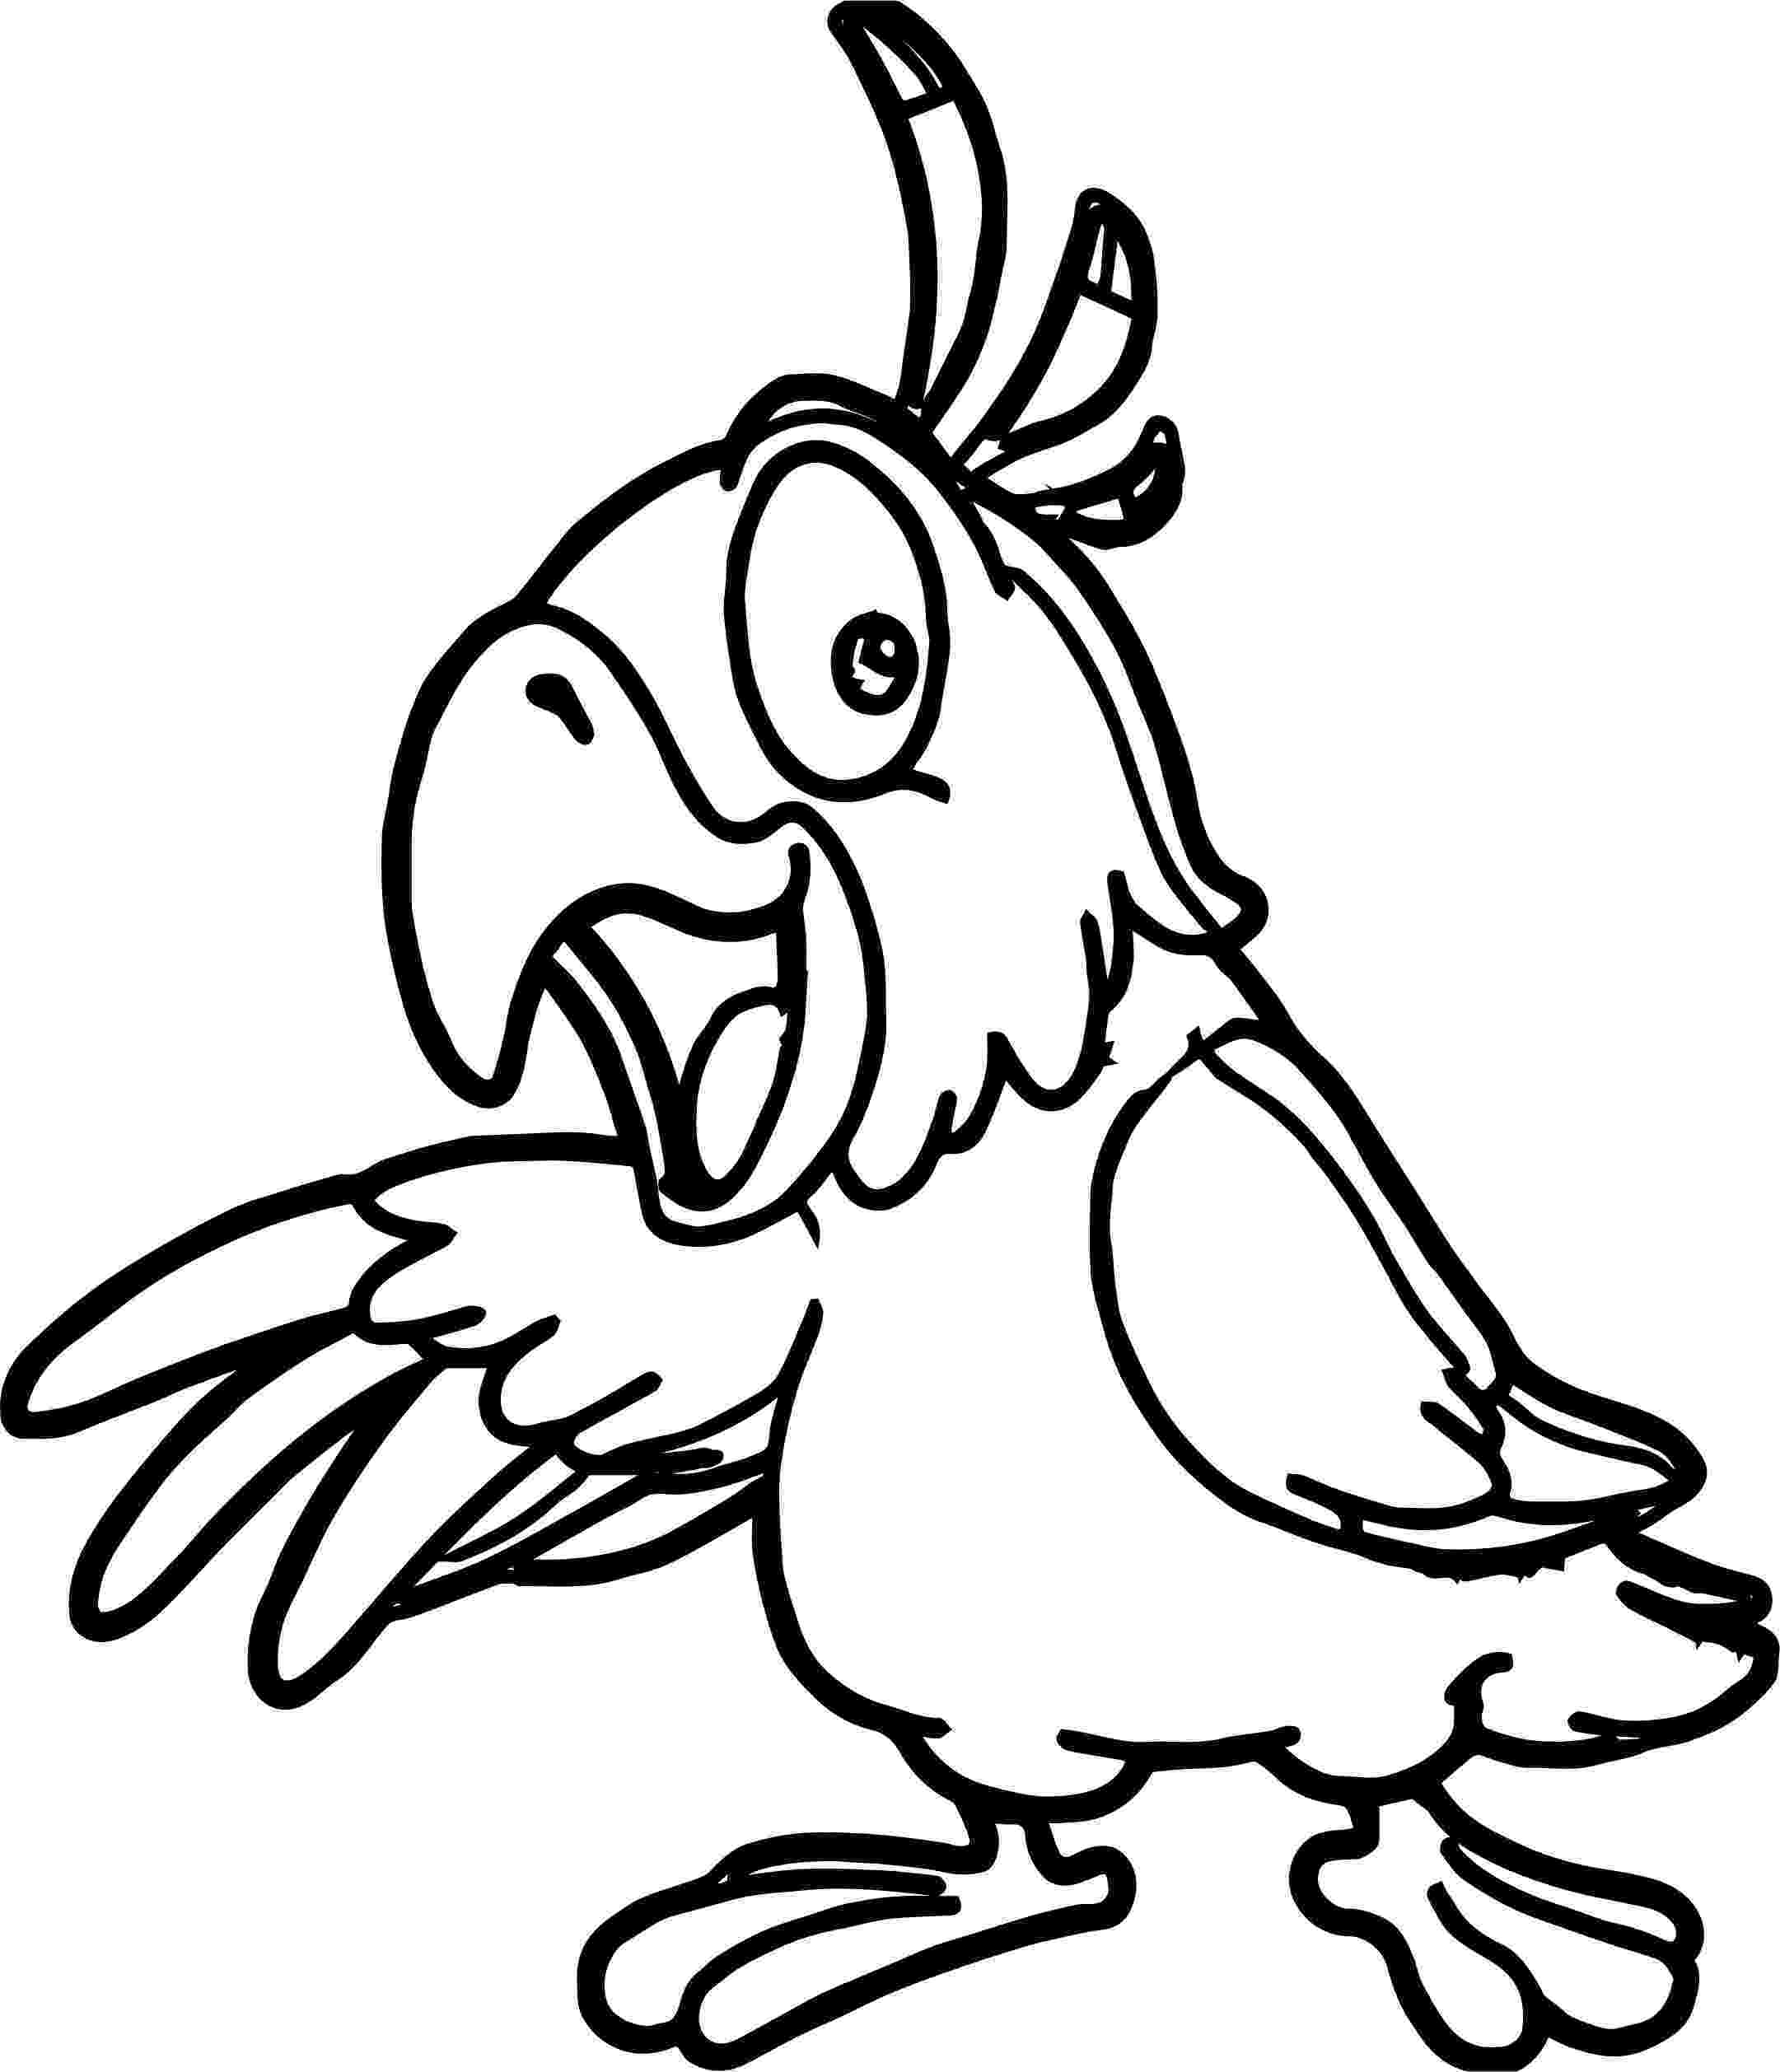 coloring pages of parrots parrot bird coloring pages wecoloringpagecom pages of parrots coloring